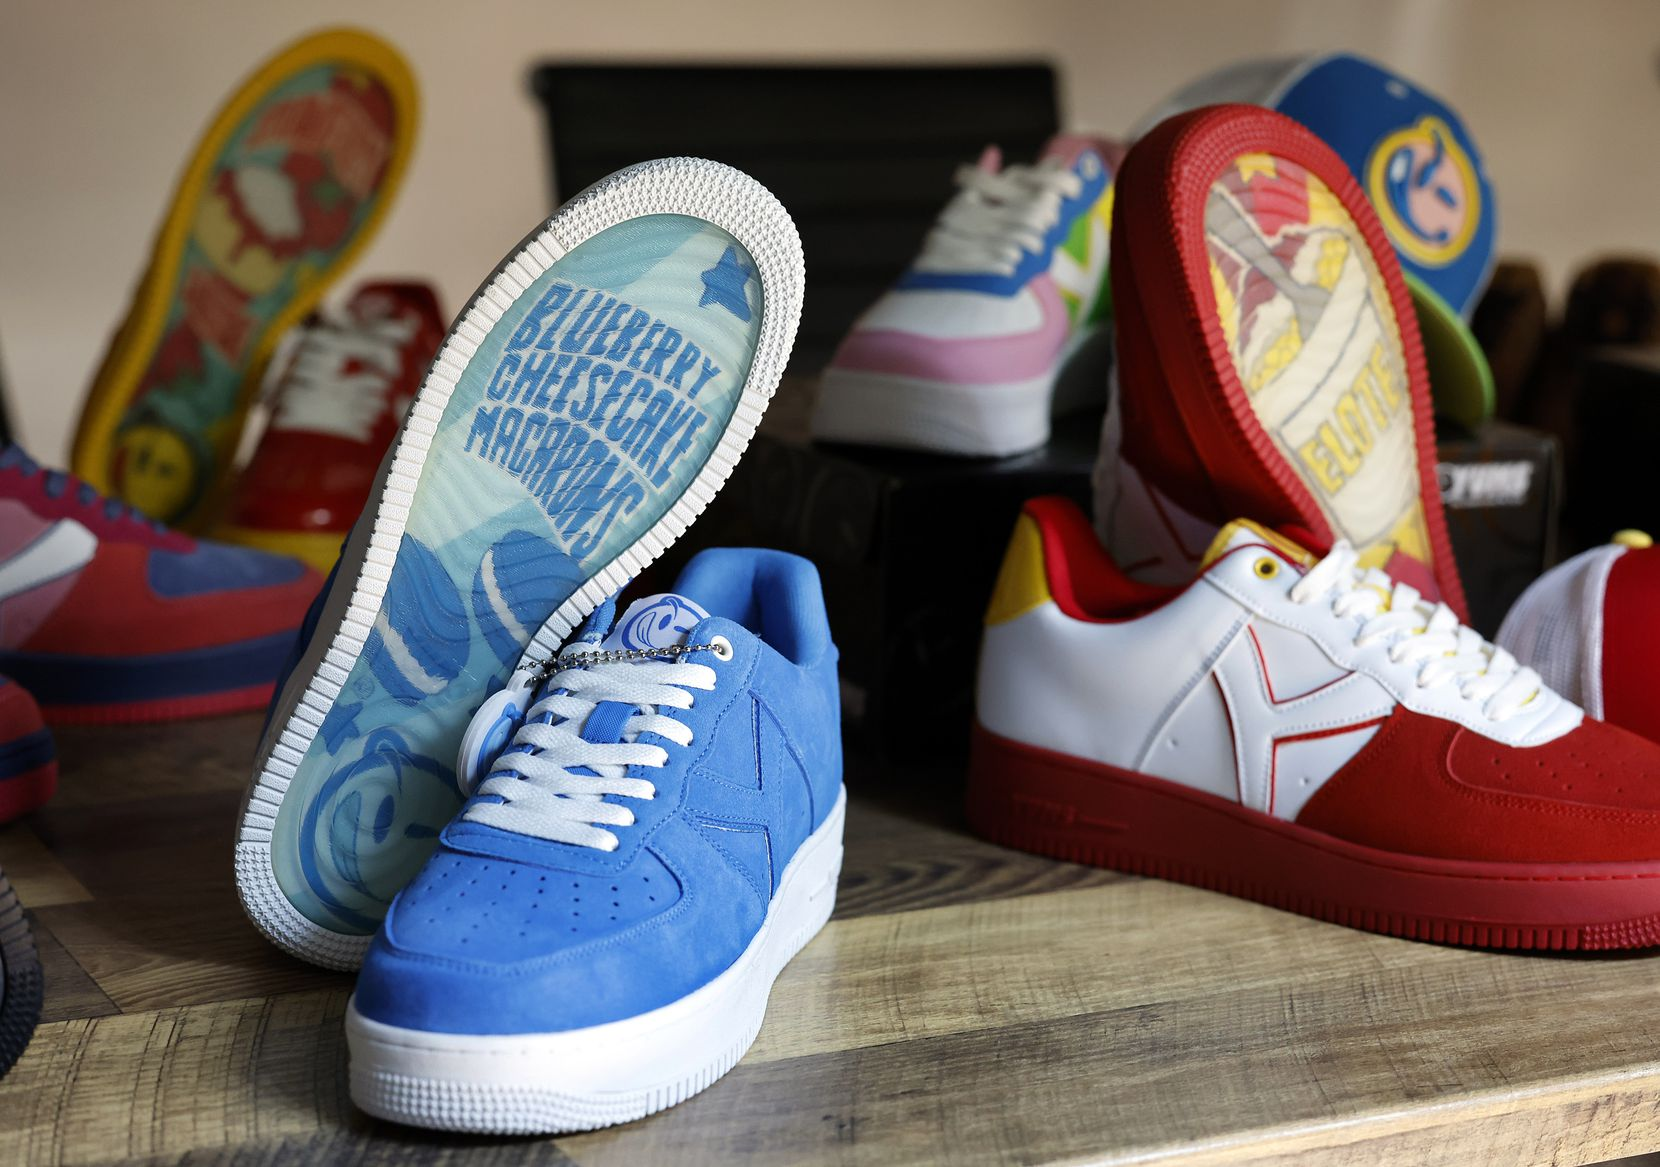 The newest collection of YUMS sneakers on display at Already Design Co.'s Arlington offices. The popular mid-2000s streetwear brand is relaunching after recovering from a legal battle with Nike.